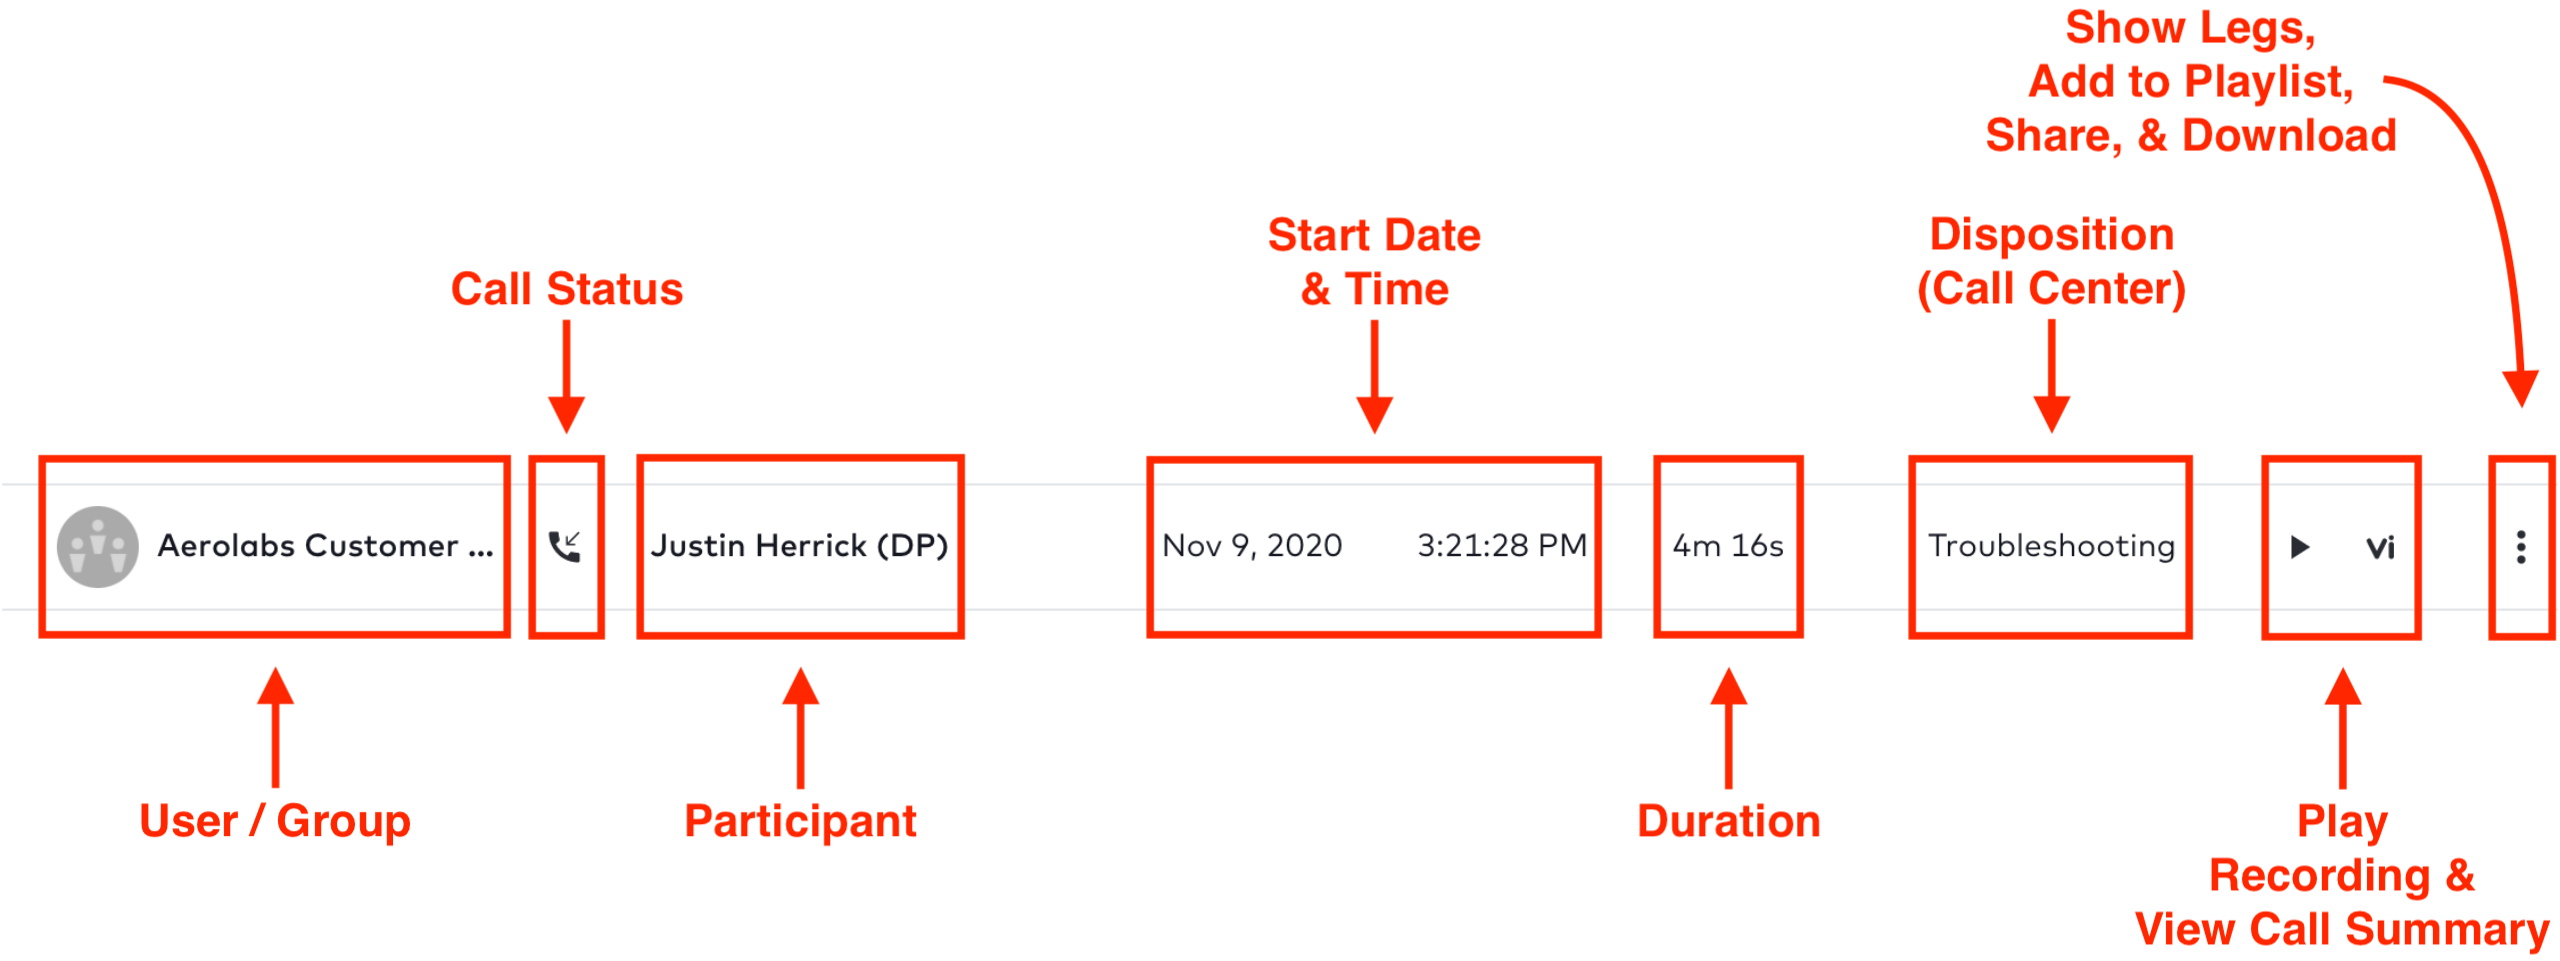 dp-call-history-example-entry.png